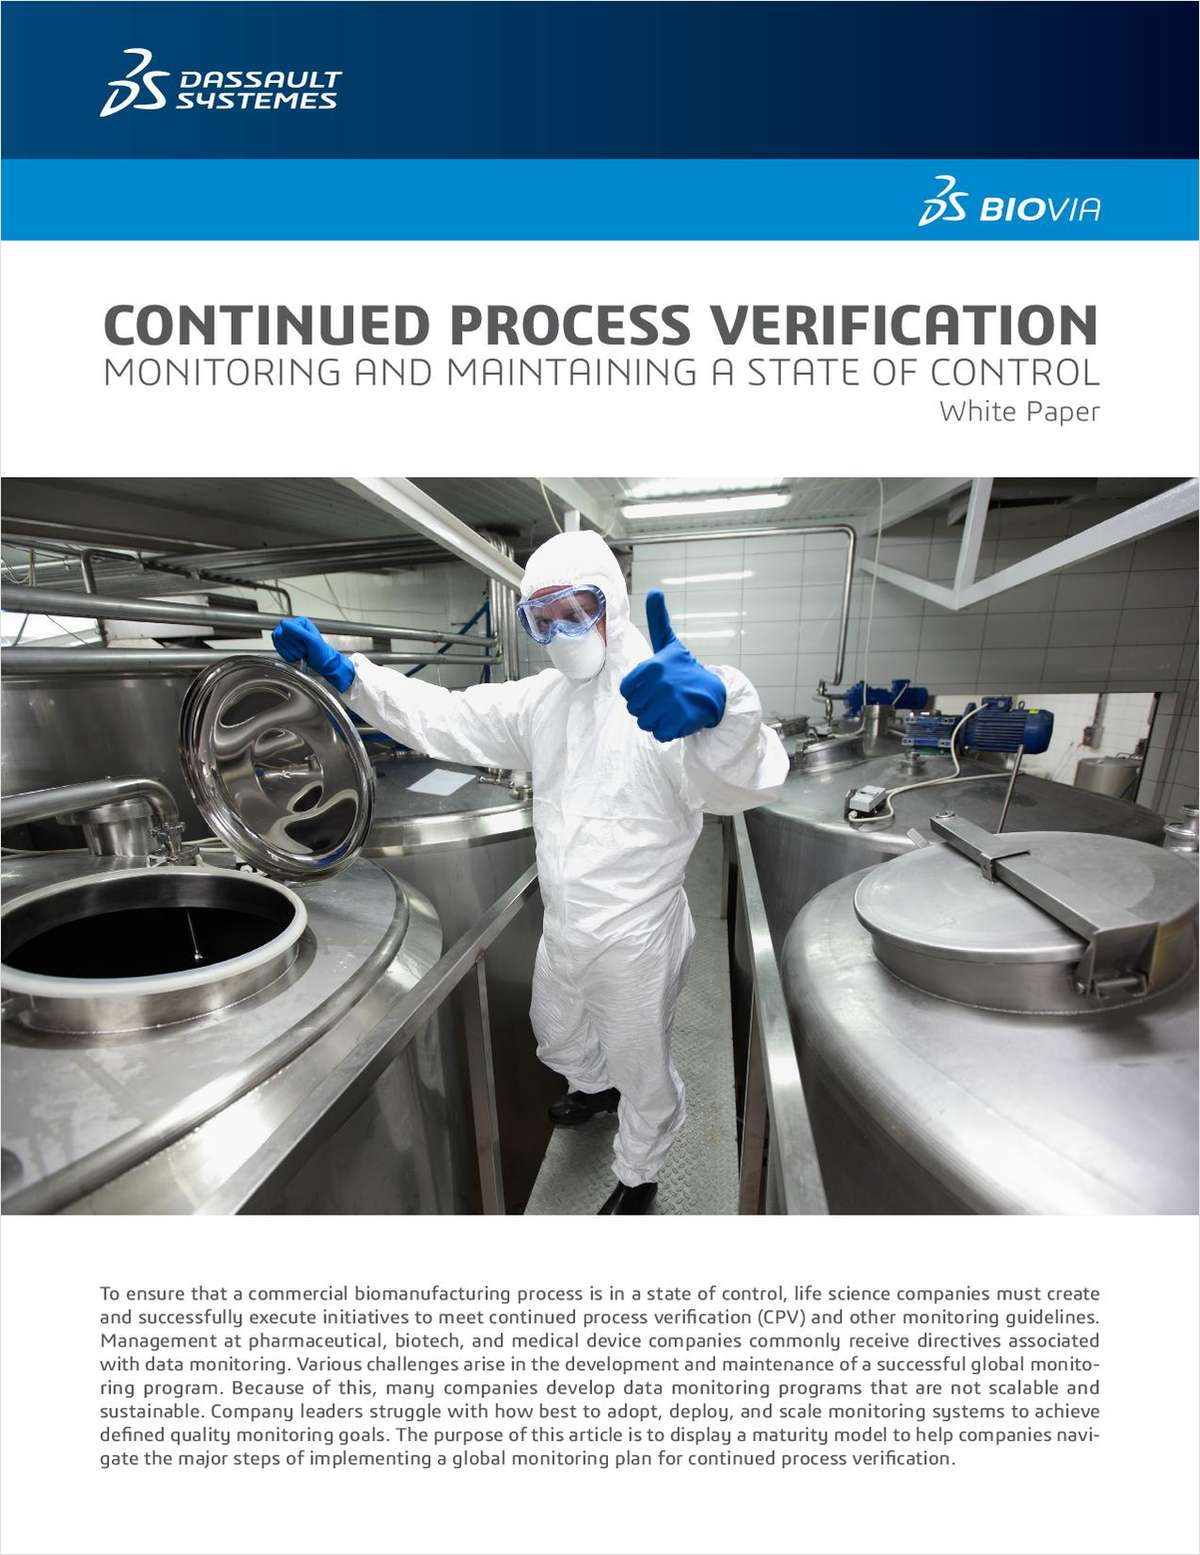 Continued Process Verification: Monitoring and Maintaining A State of Control